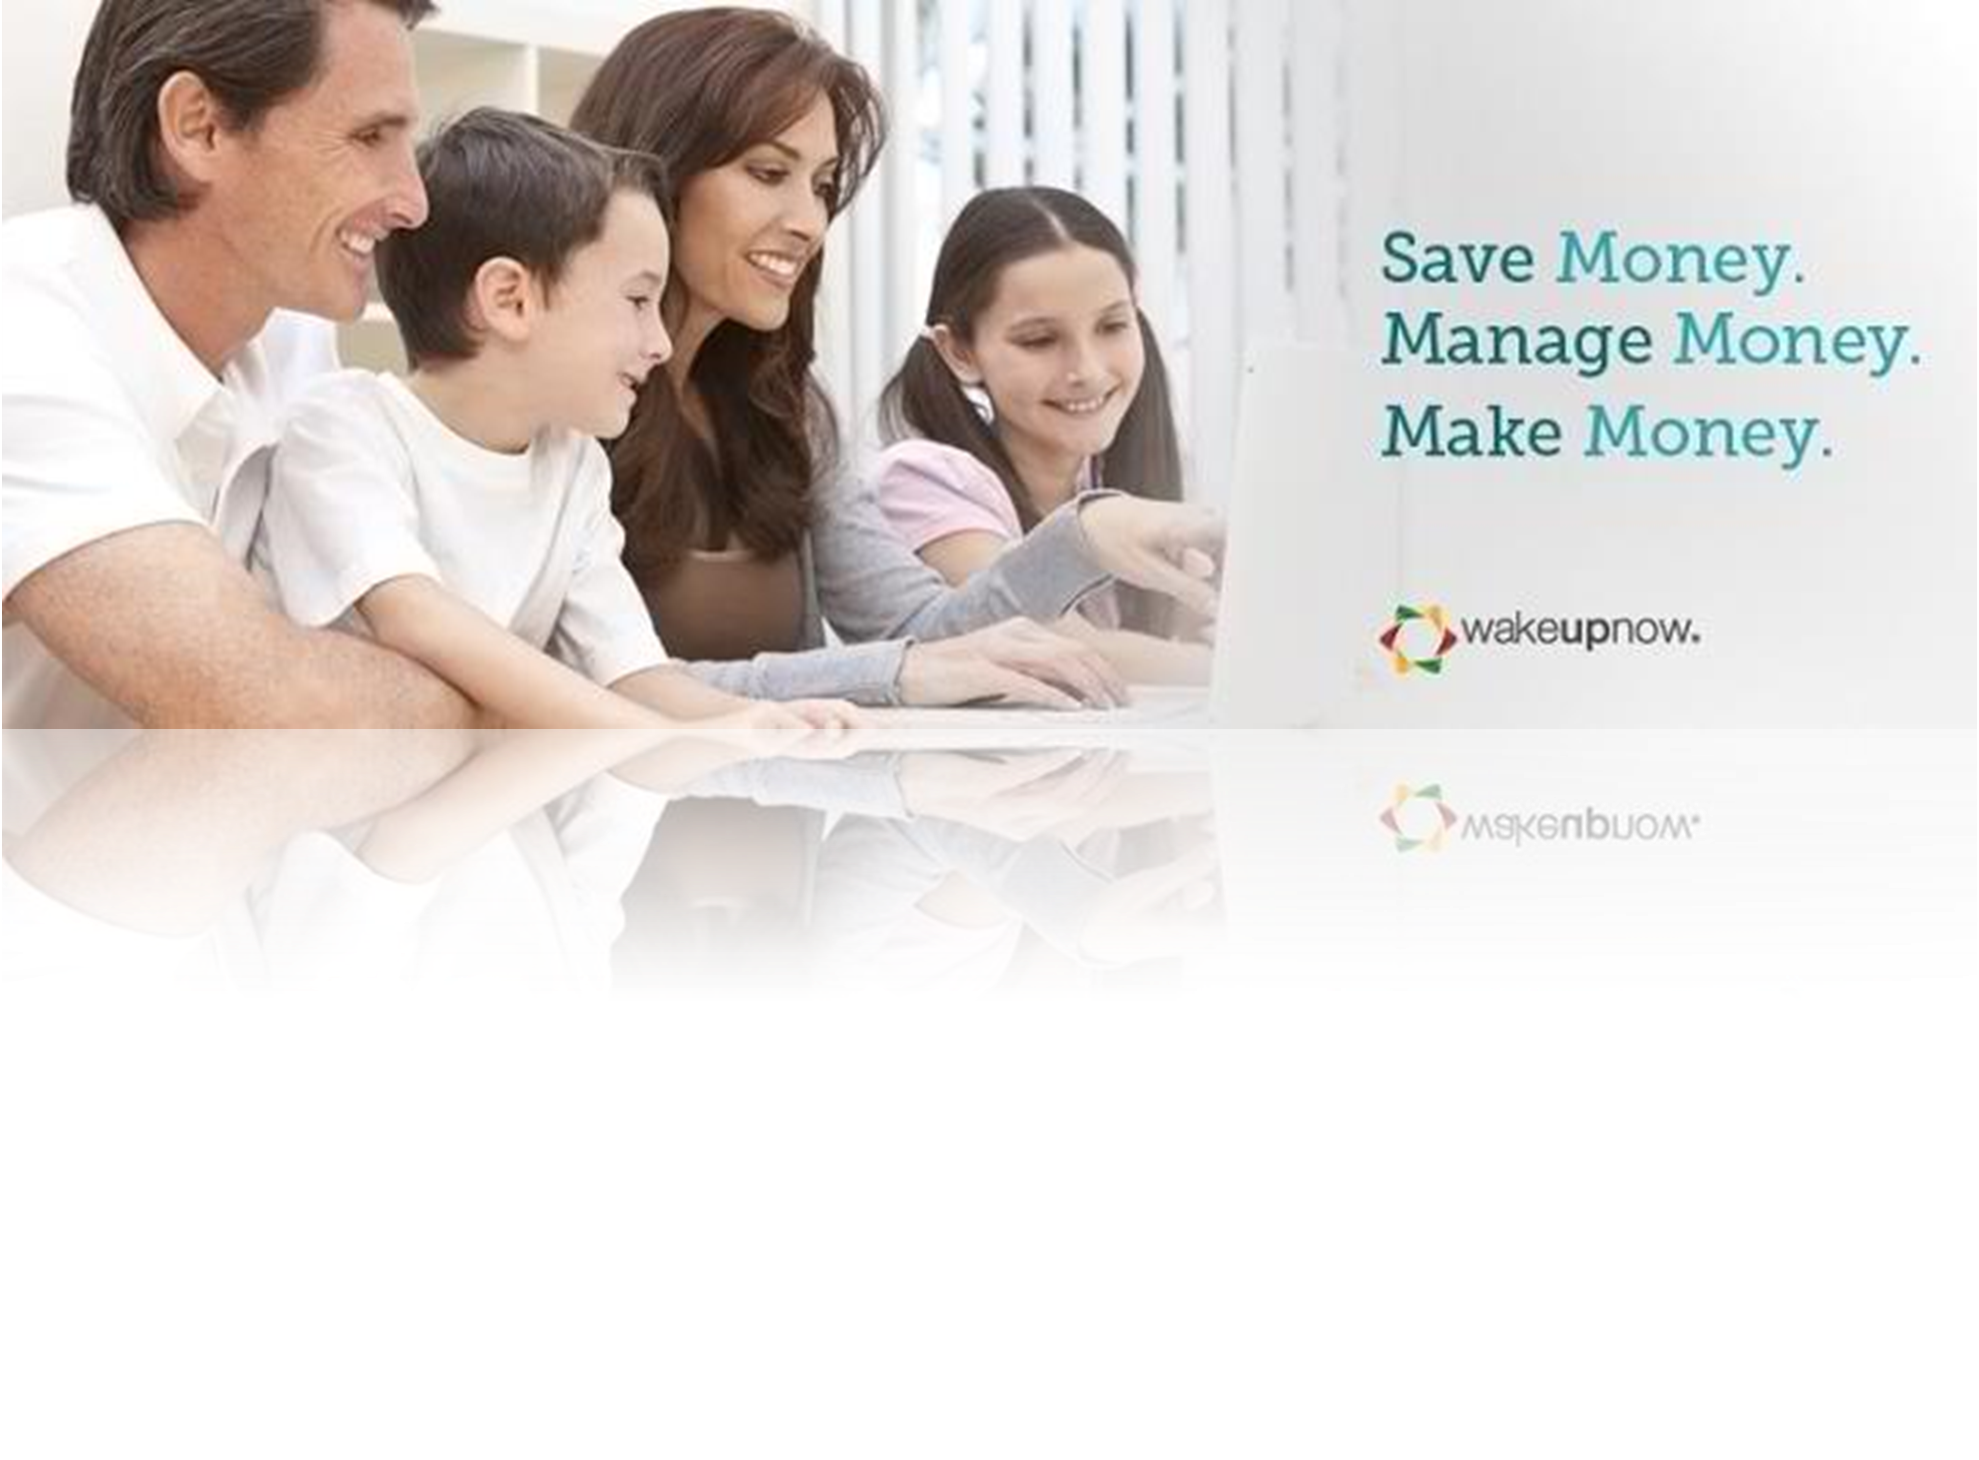 Enhance your quality of life on how you save, manage and make money. Most profitable program I have ever been a part of. http://season4sight.wakeupnow.com